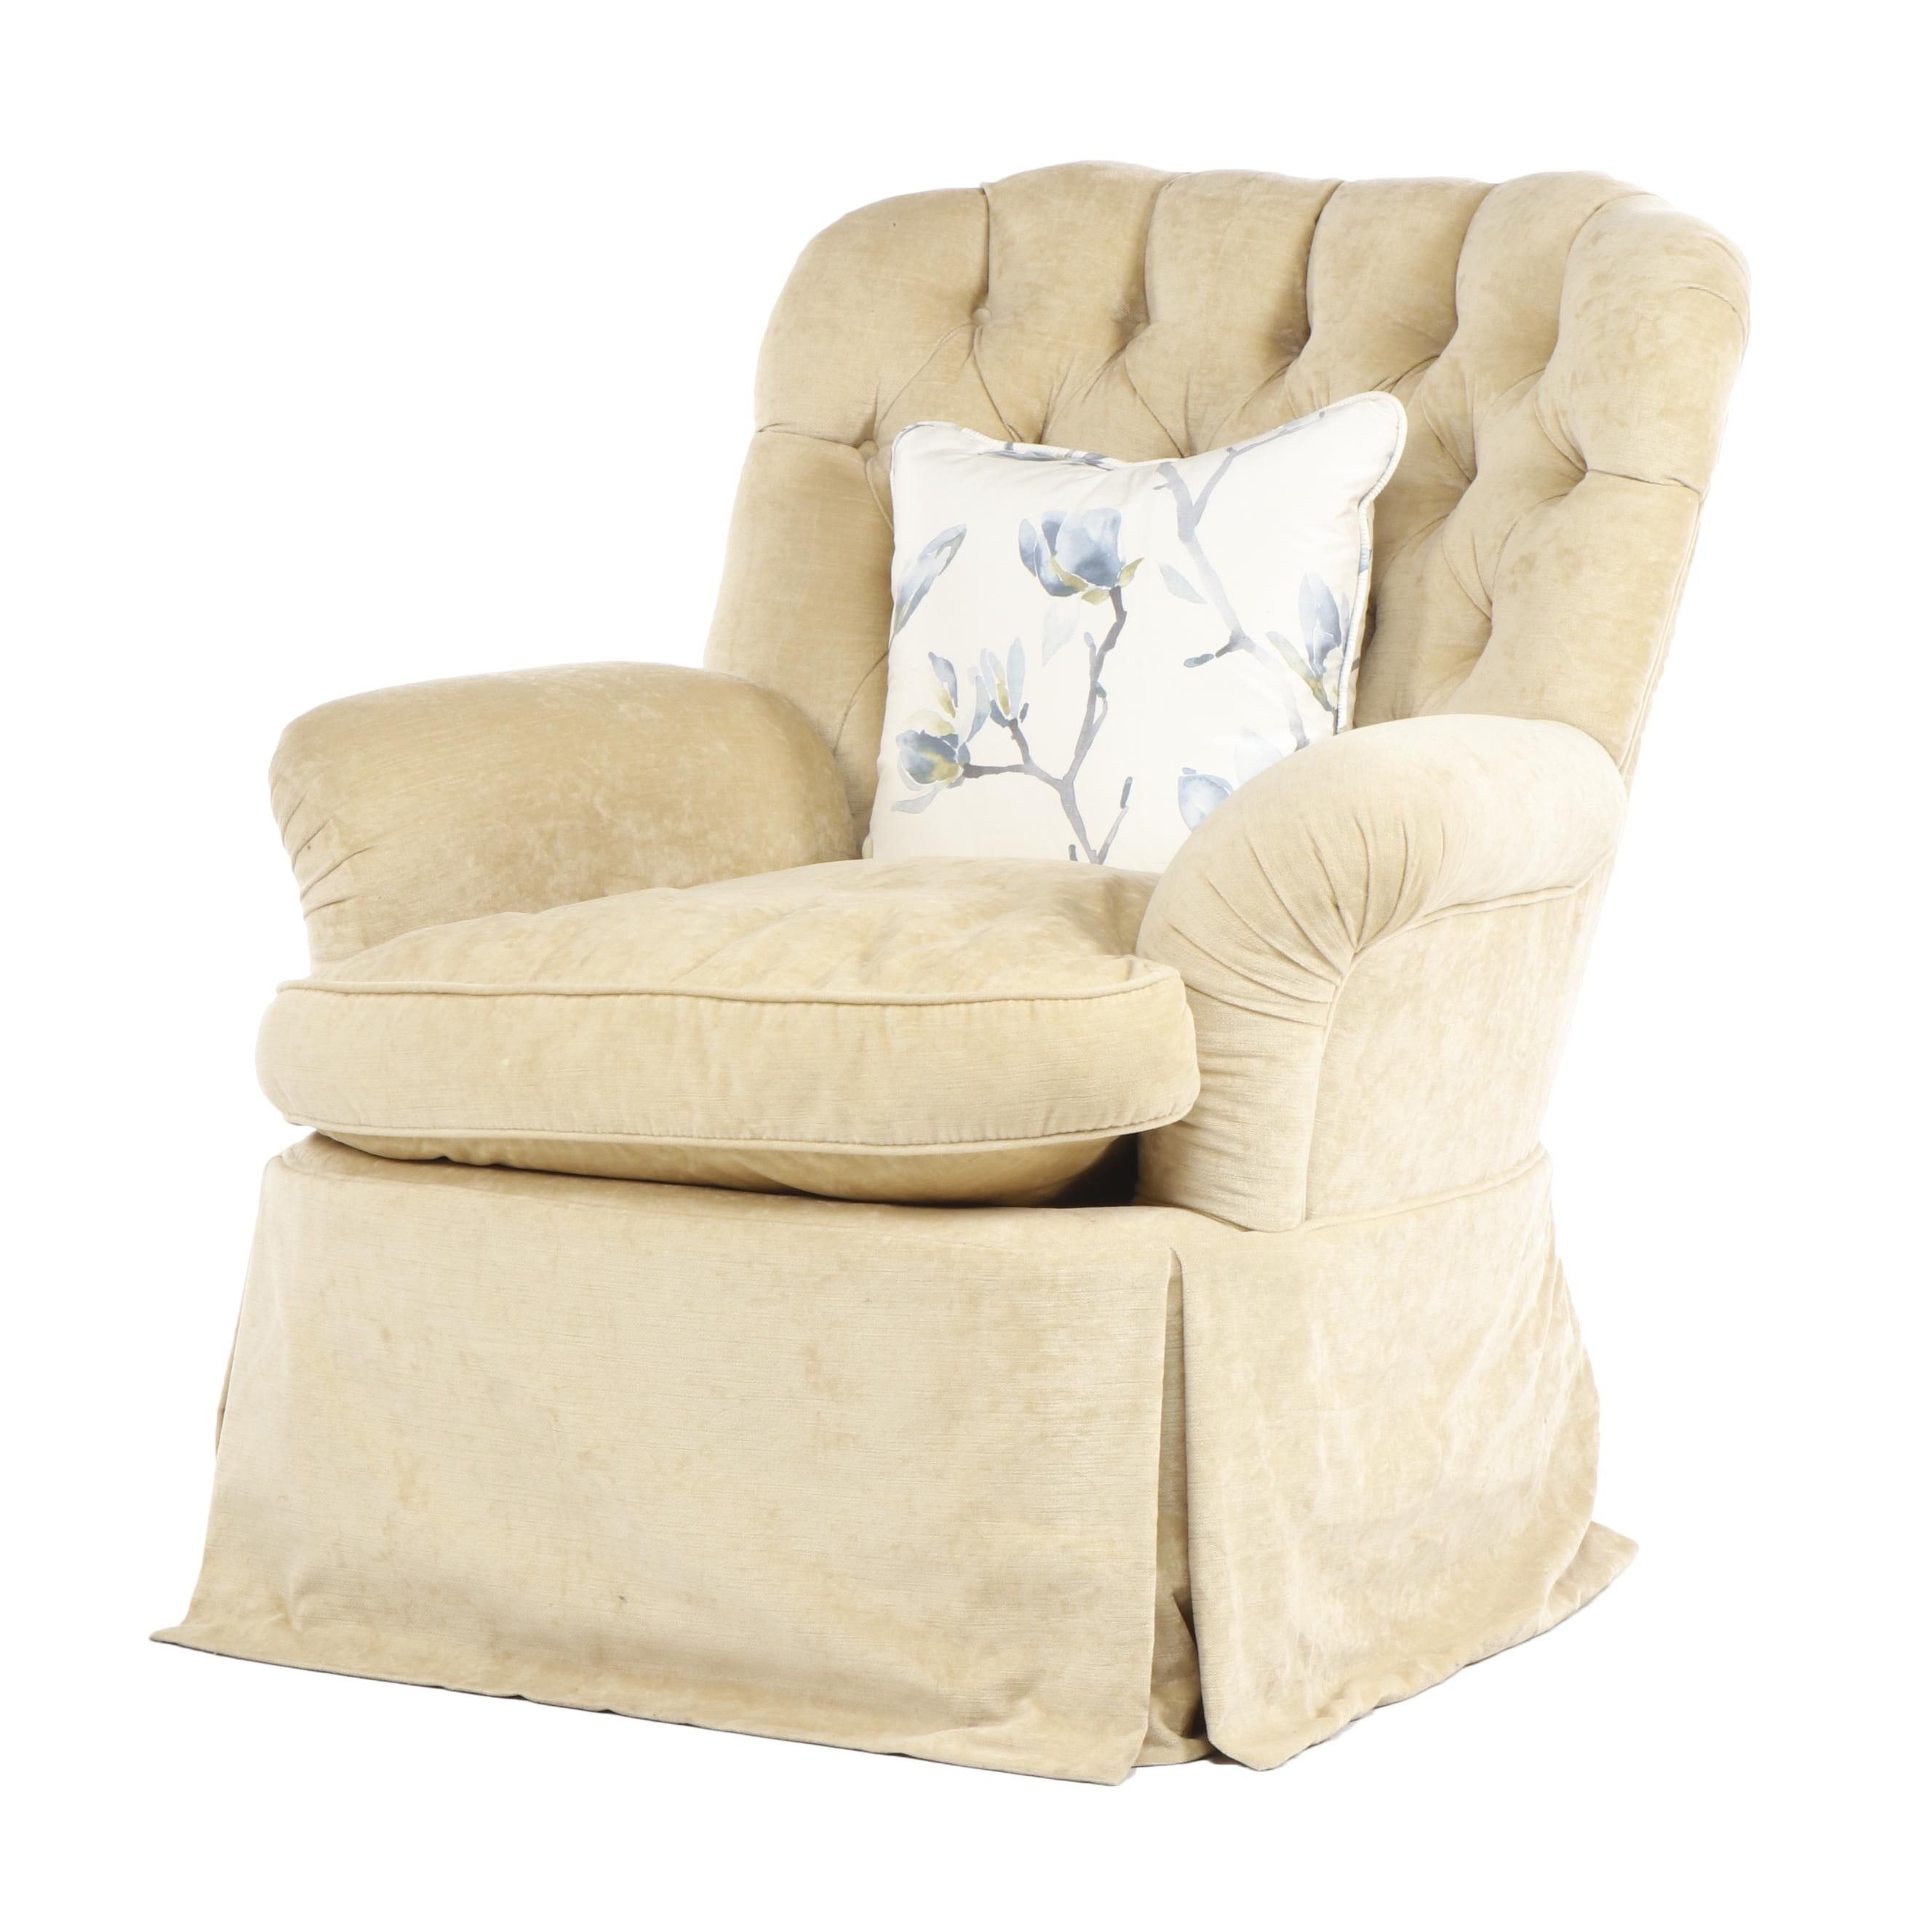 Tan Button Tufted Upholstered Armchair